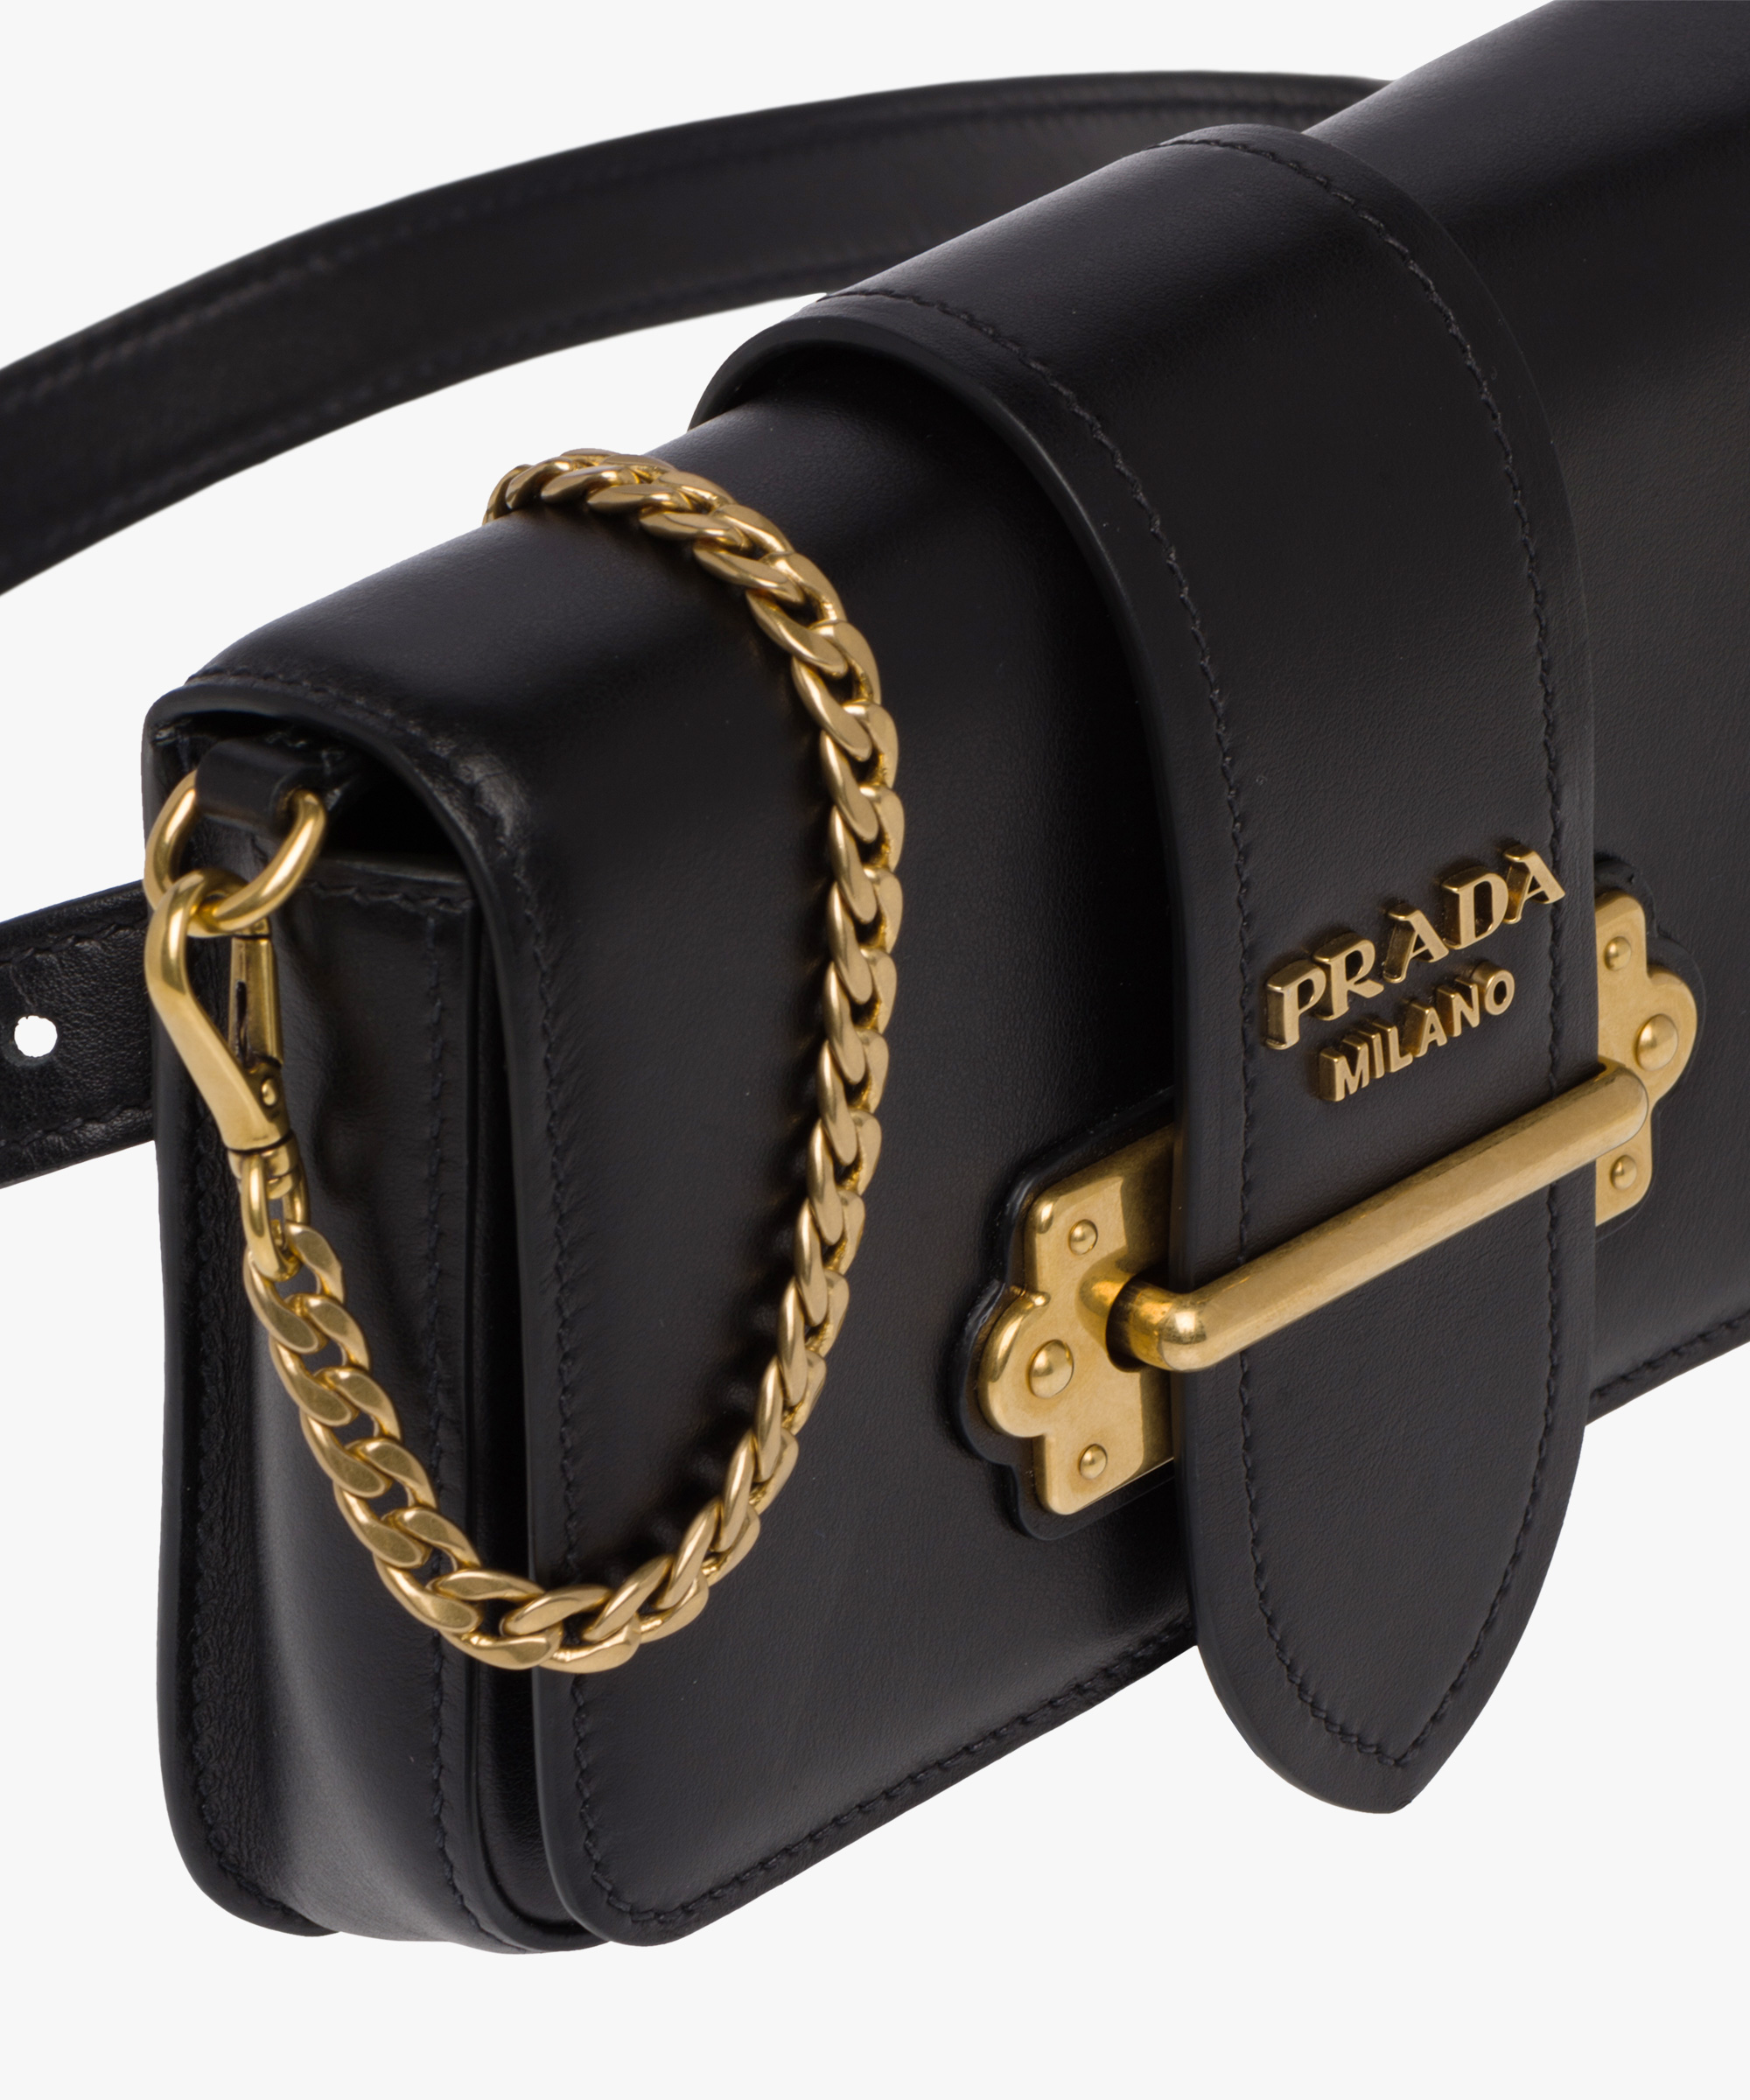 ... Prada Cahier Belt Bag Prada BLACK ... a4941abf39